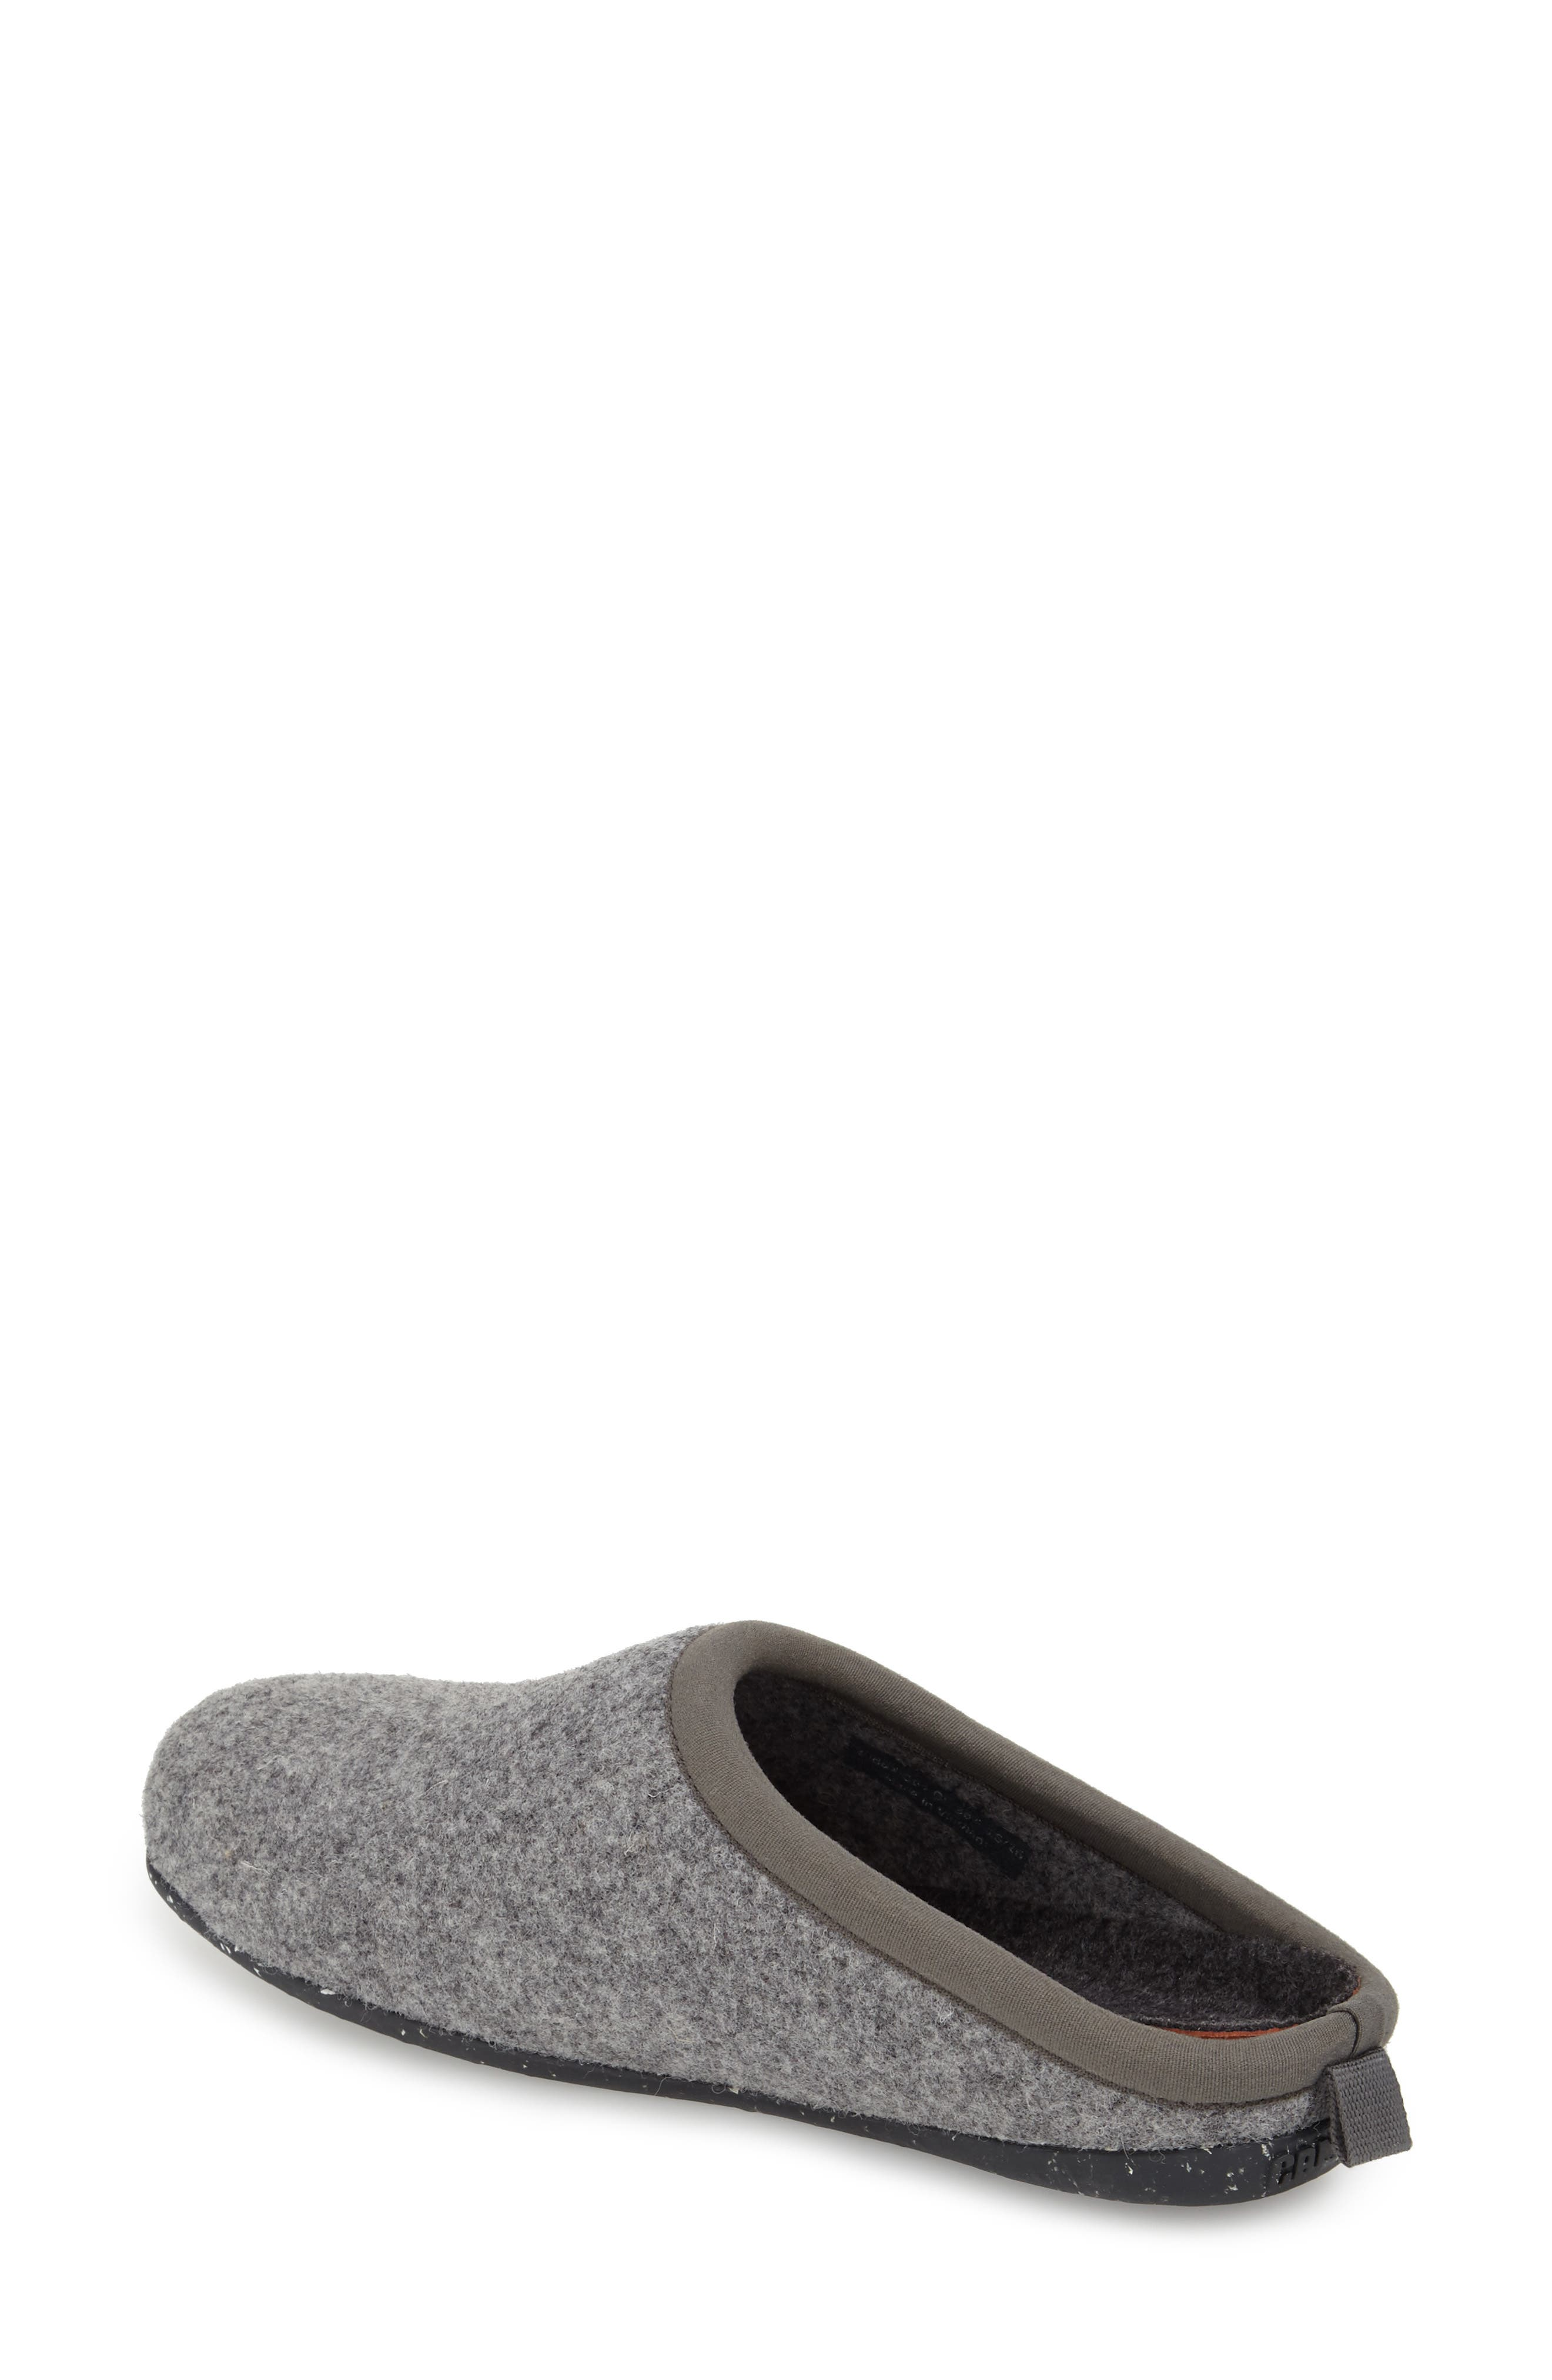 'Wabi' Slipper,                         Main,                         color, DARK GRAY WOOL